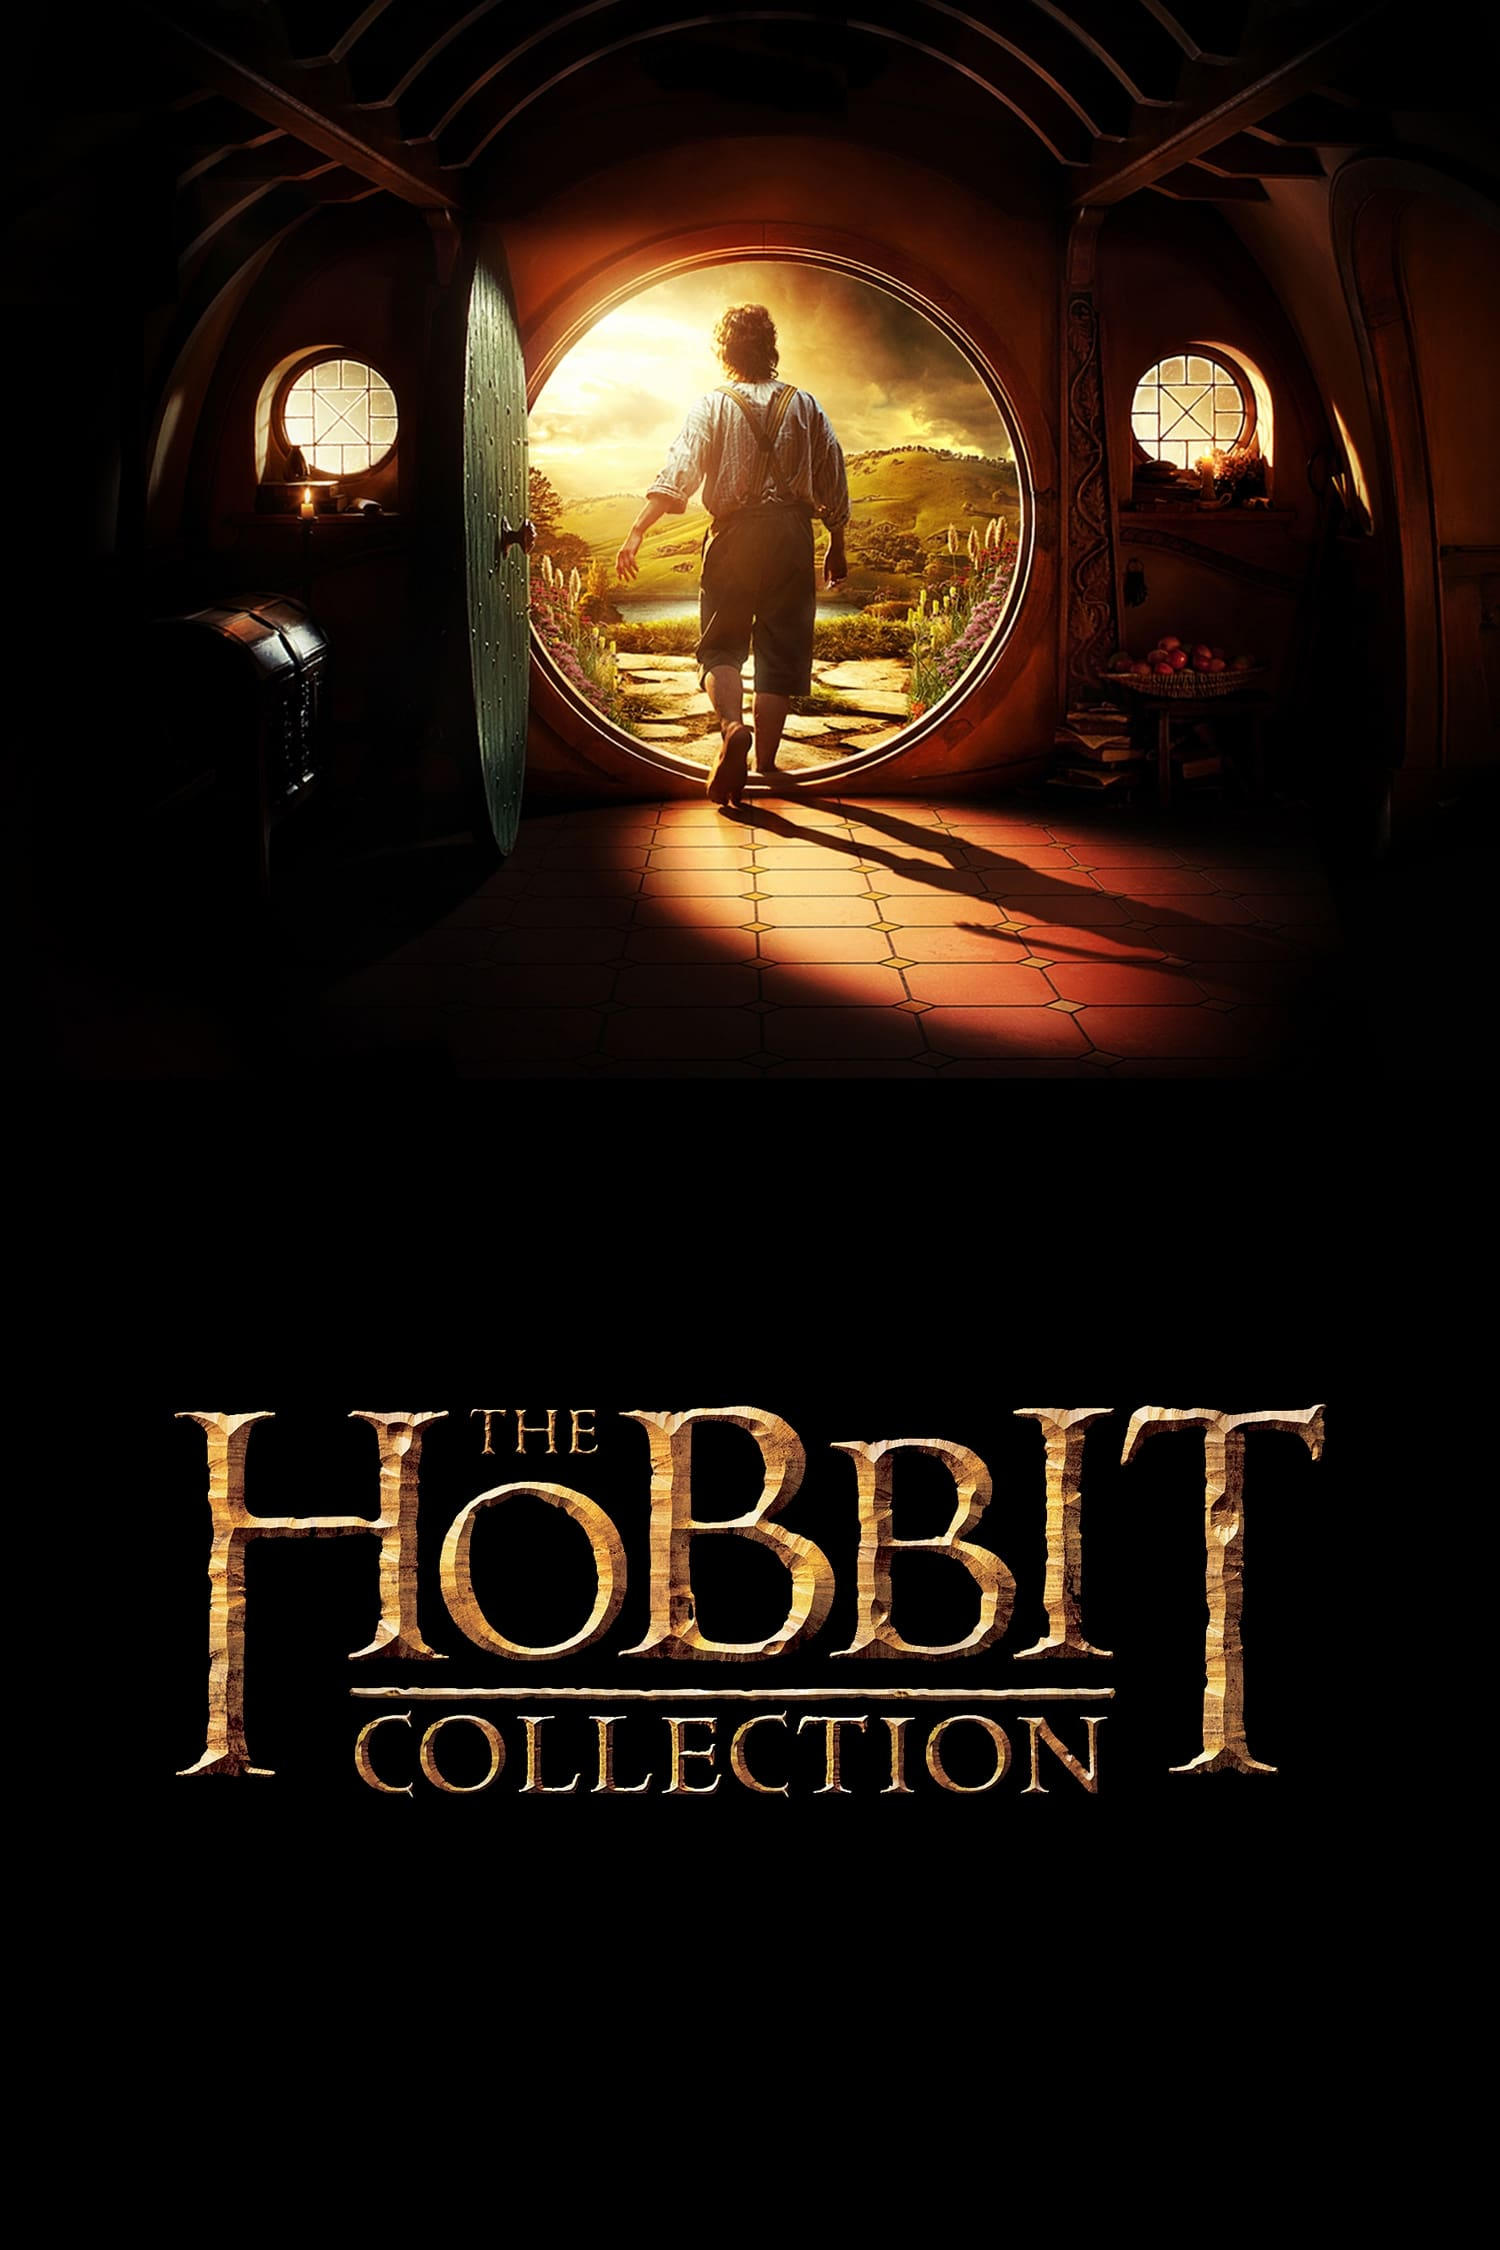 All Movies From The Hobbit Collection Saga Are On Movies